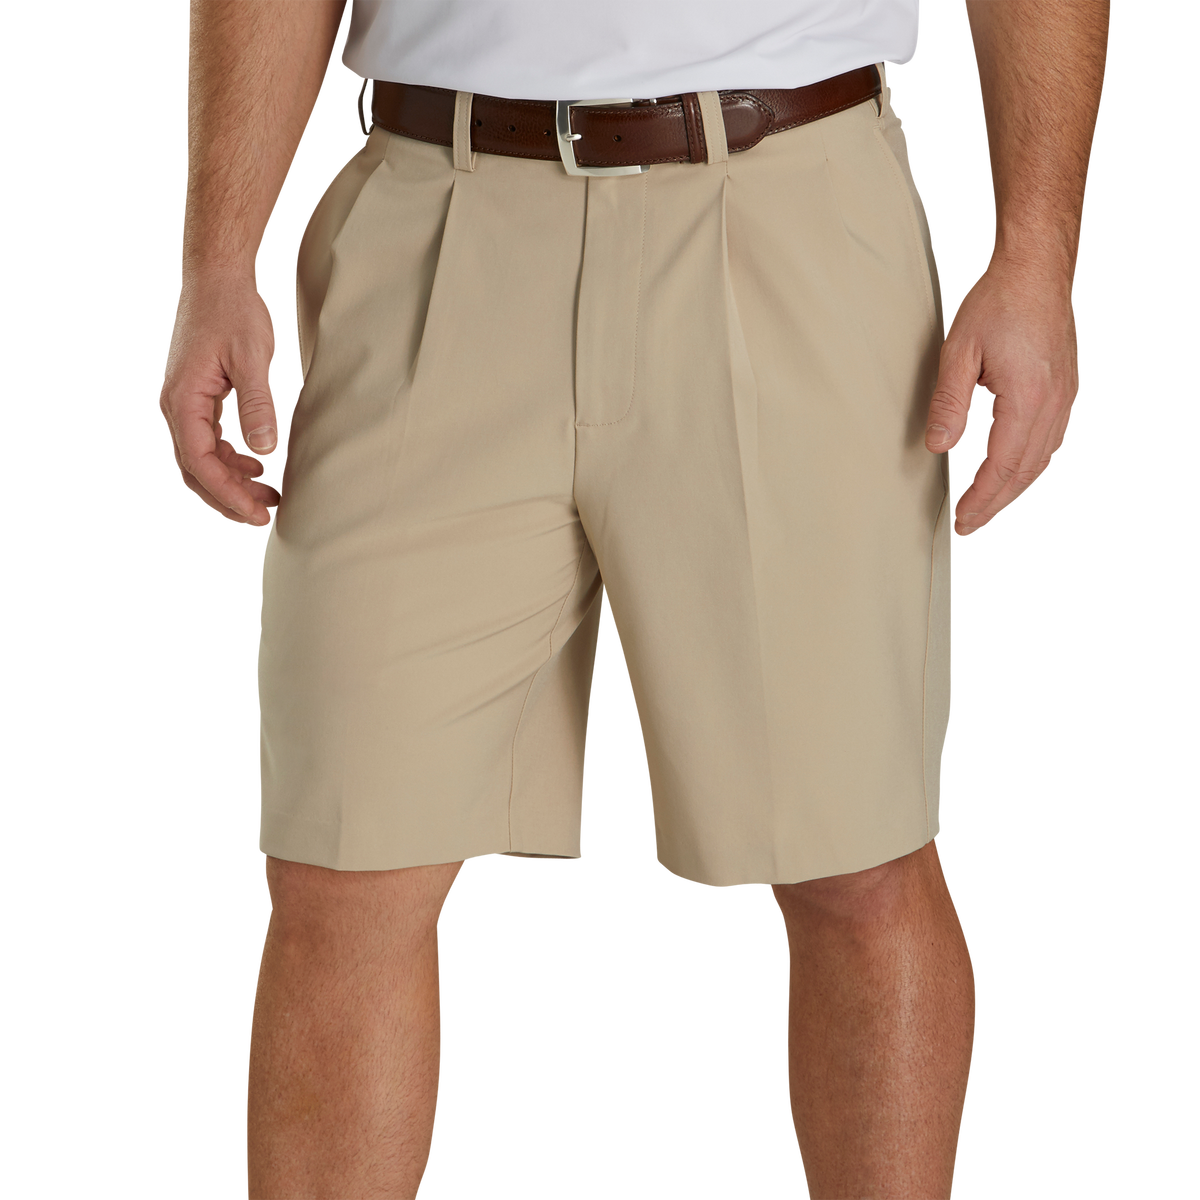 "Pleated Shorts 9.5"" Inseam"